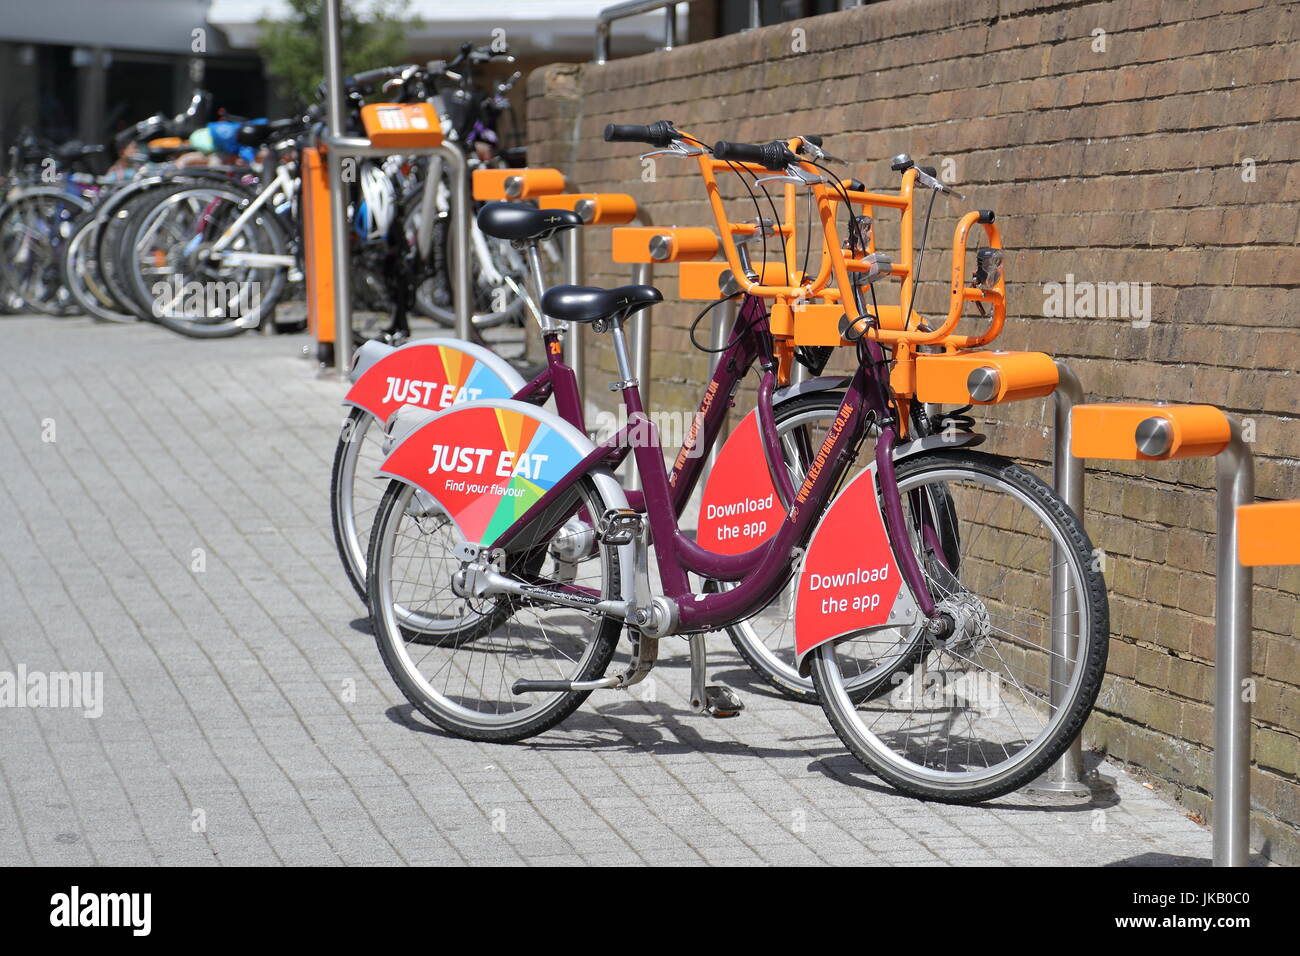 Readybikes, bicycles for hire at Reading Station, UK - Stock Image